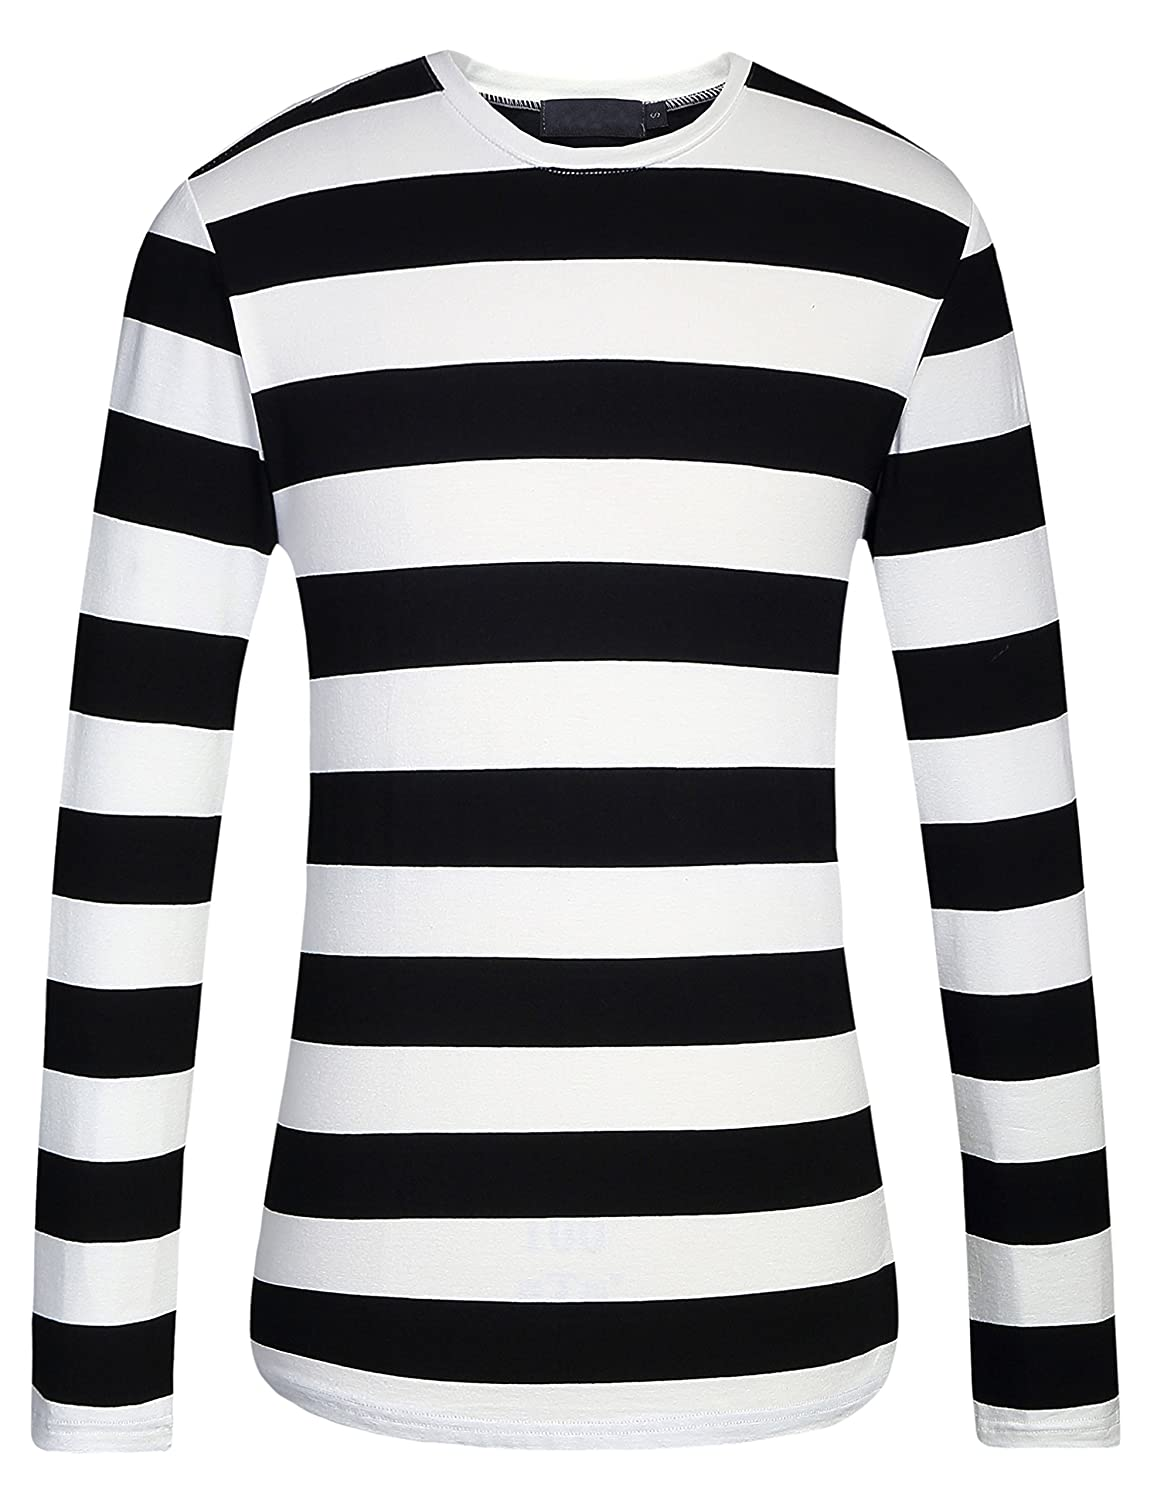 Find great deals on eBay for mens black and white striped shirt. Shop with confidence.